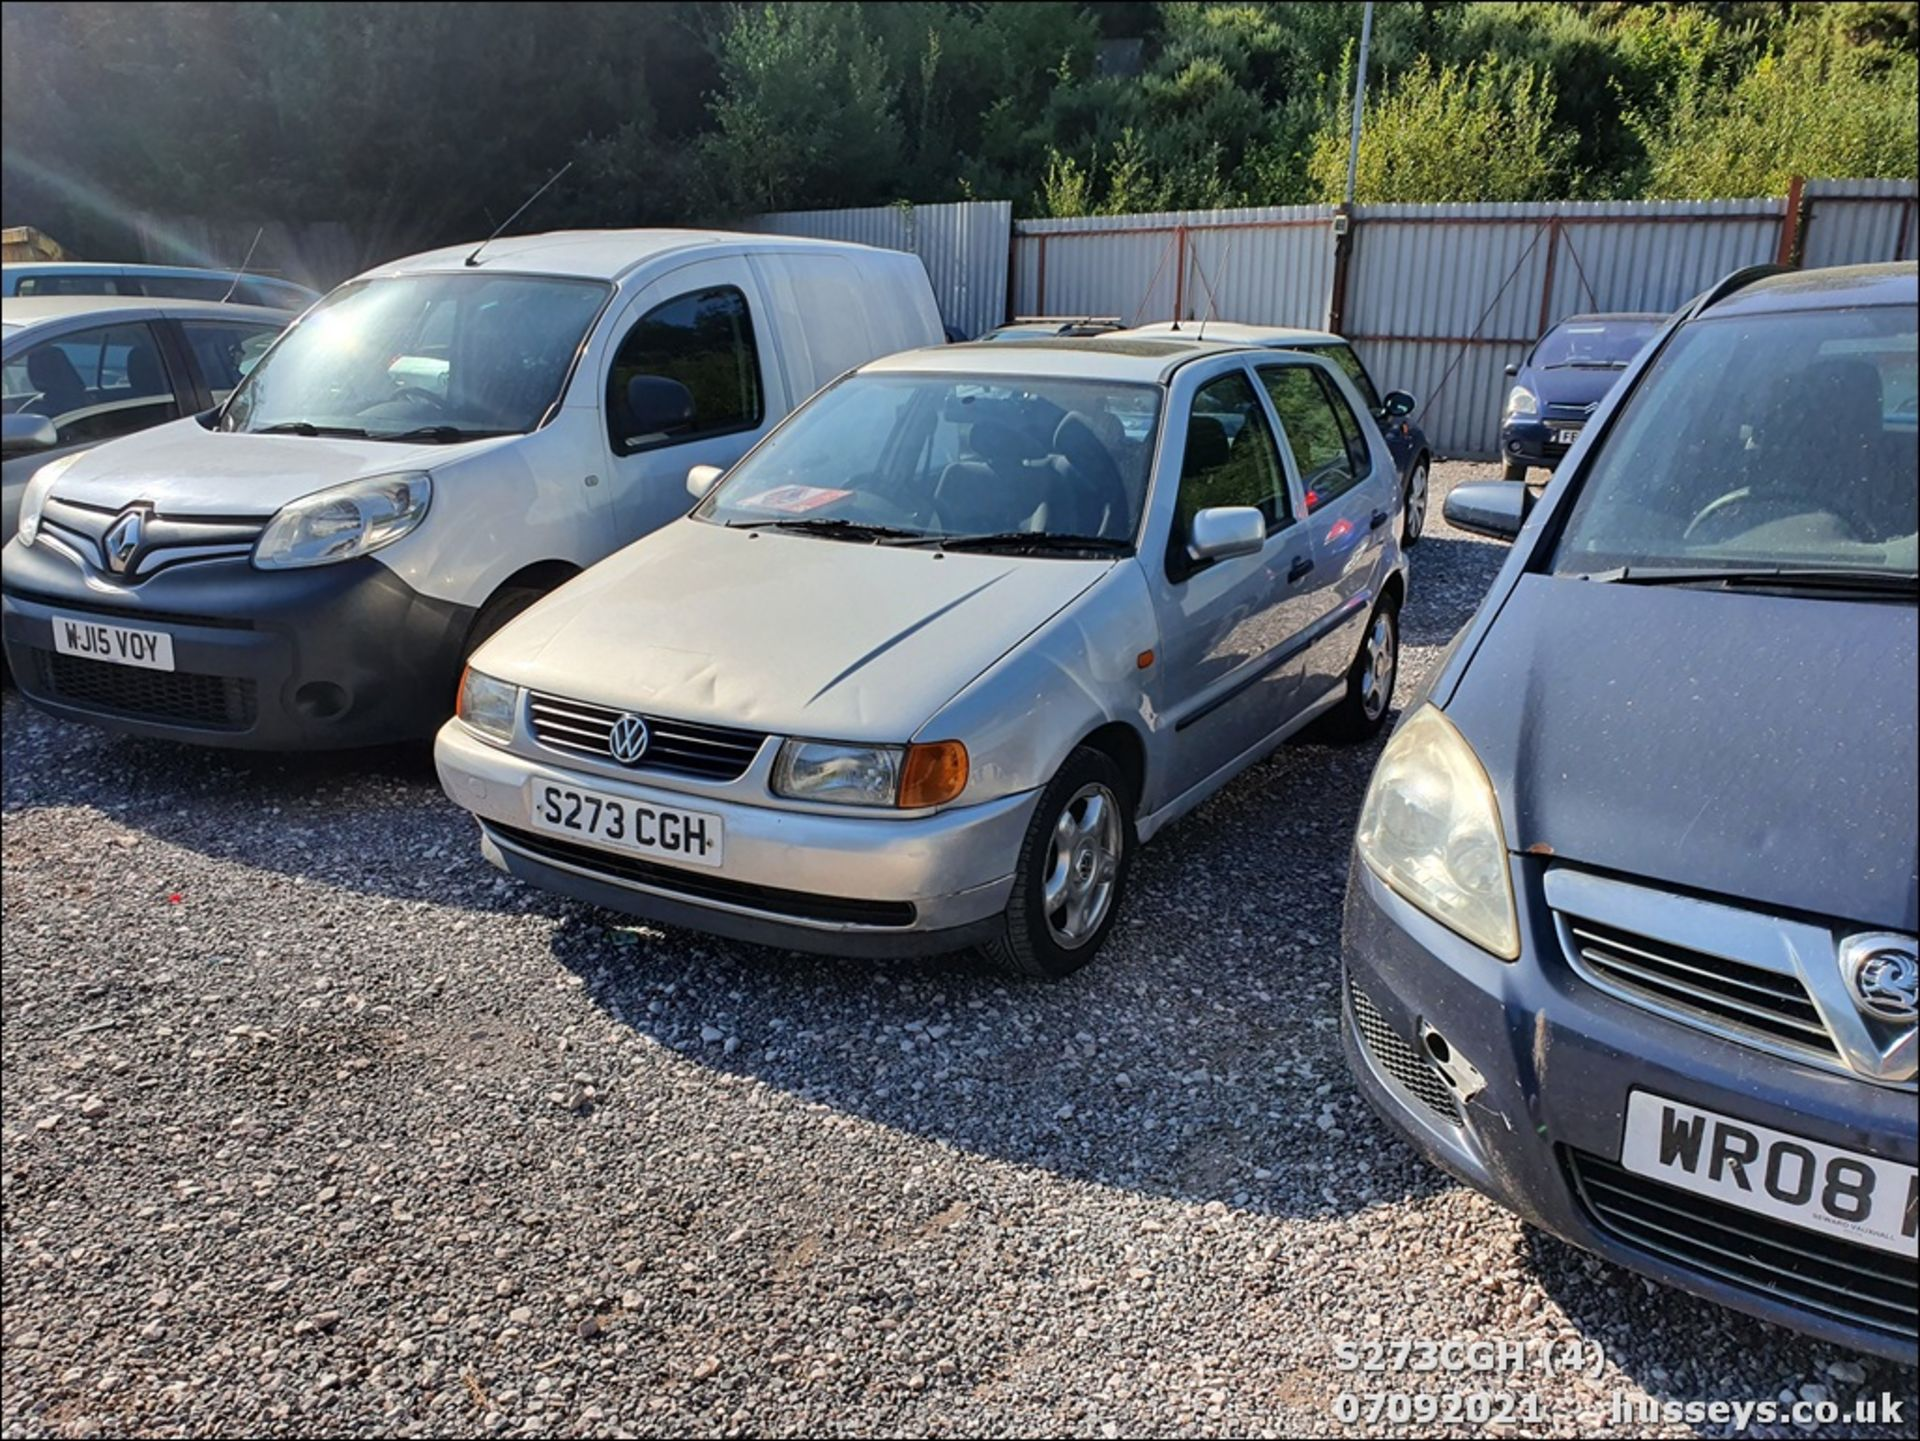 1998 VOLKSWAGEN POLO 1.6 GL AUTO - 1598cc 5dr Hatchback (Silver, 113k) - Image 4 of 13